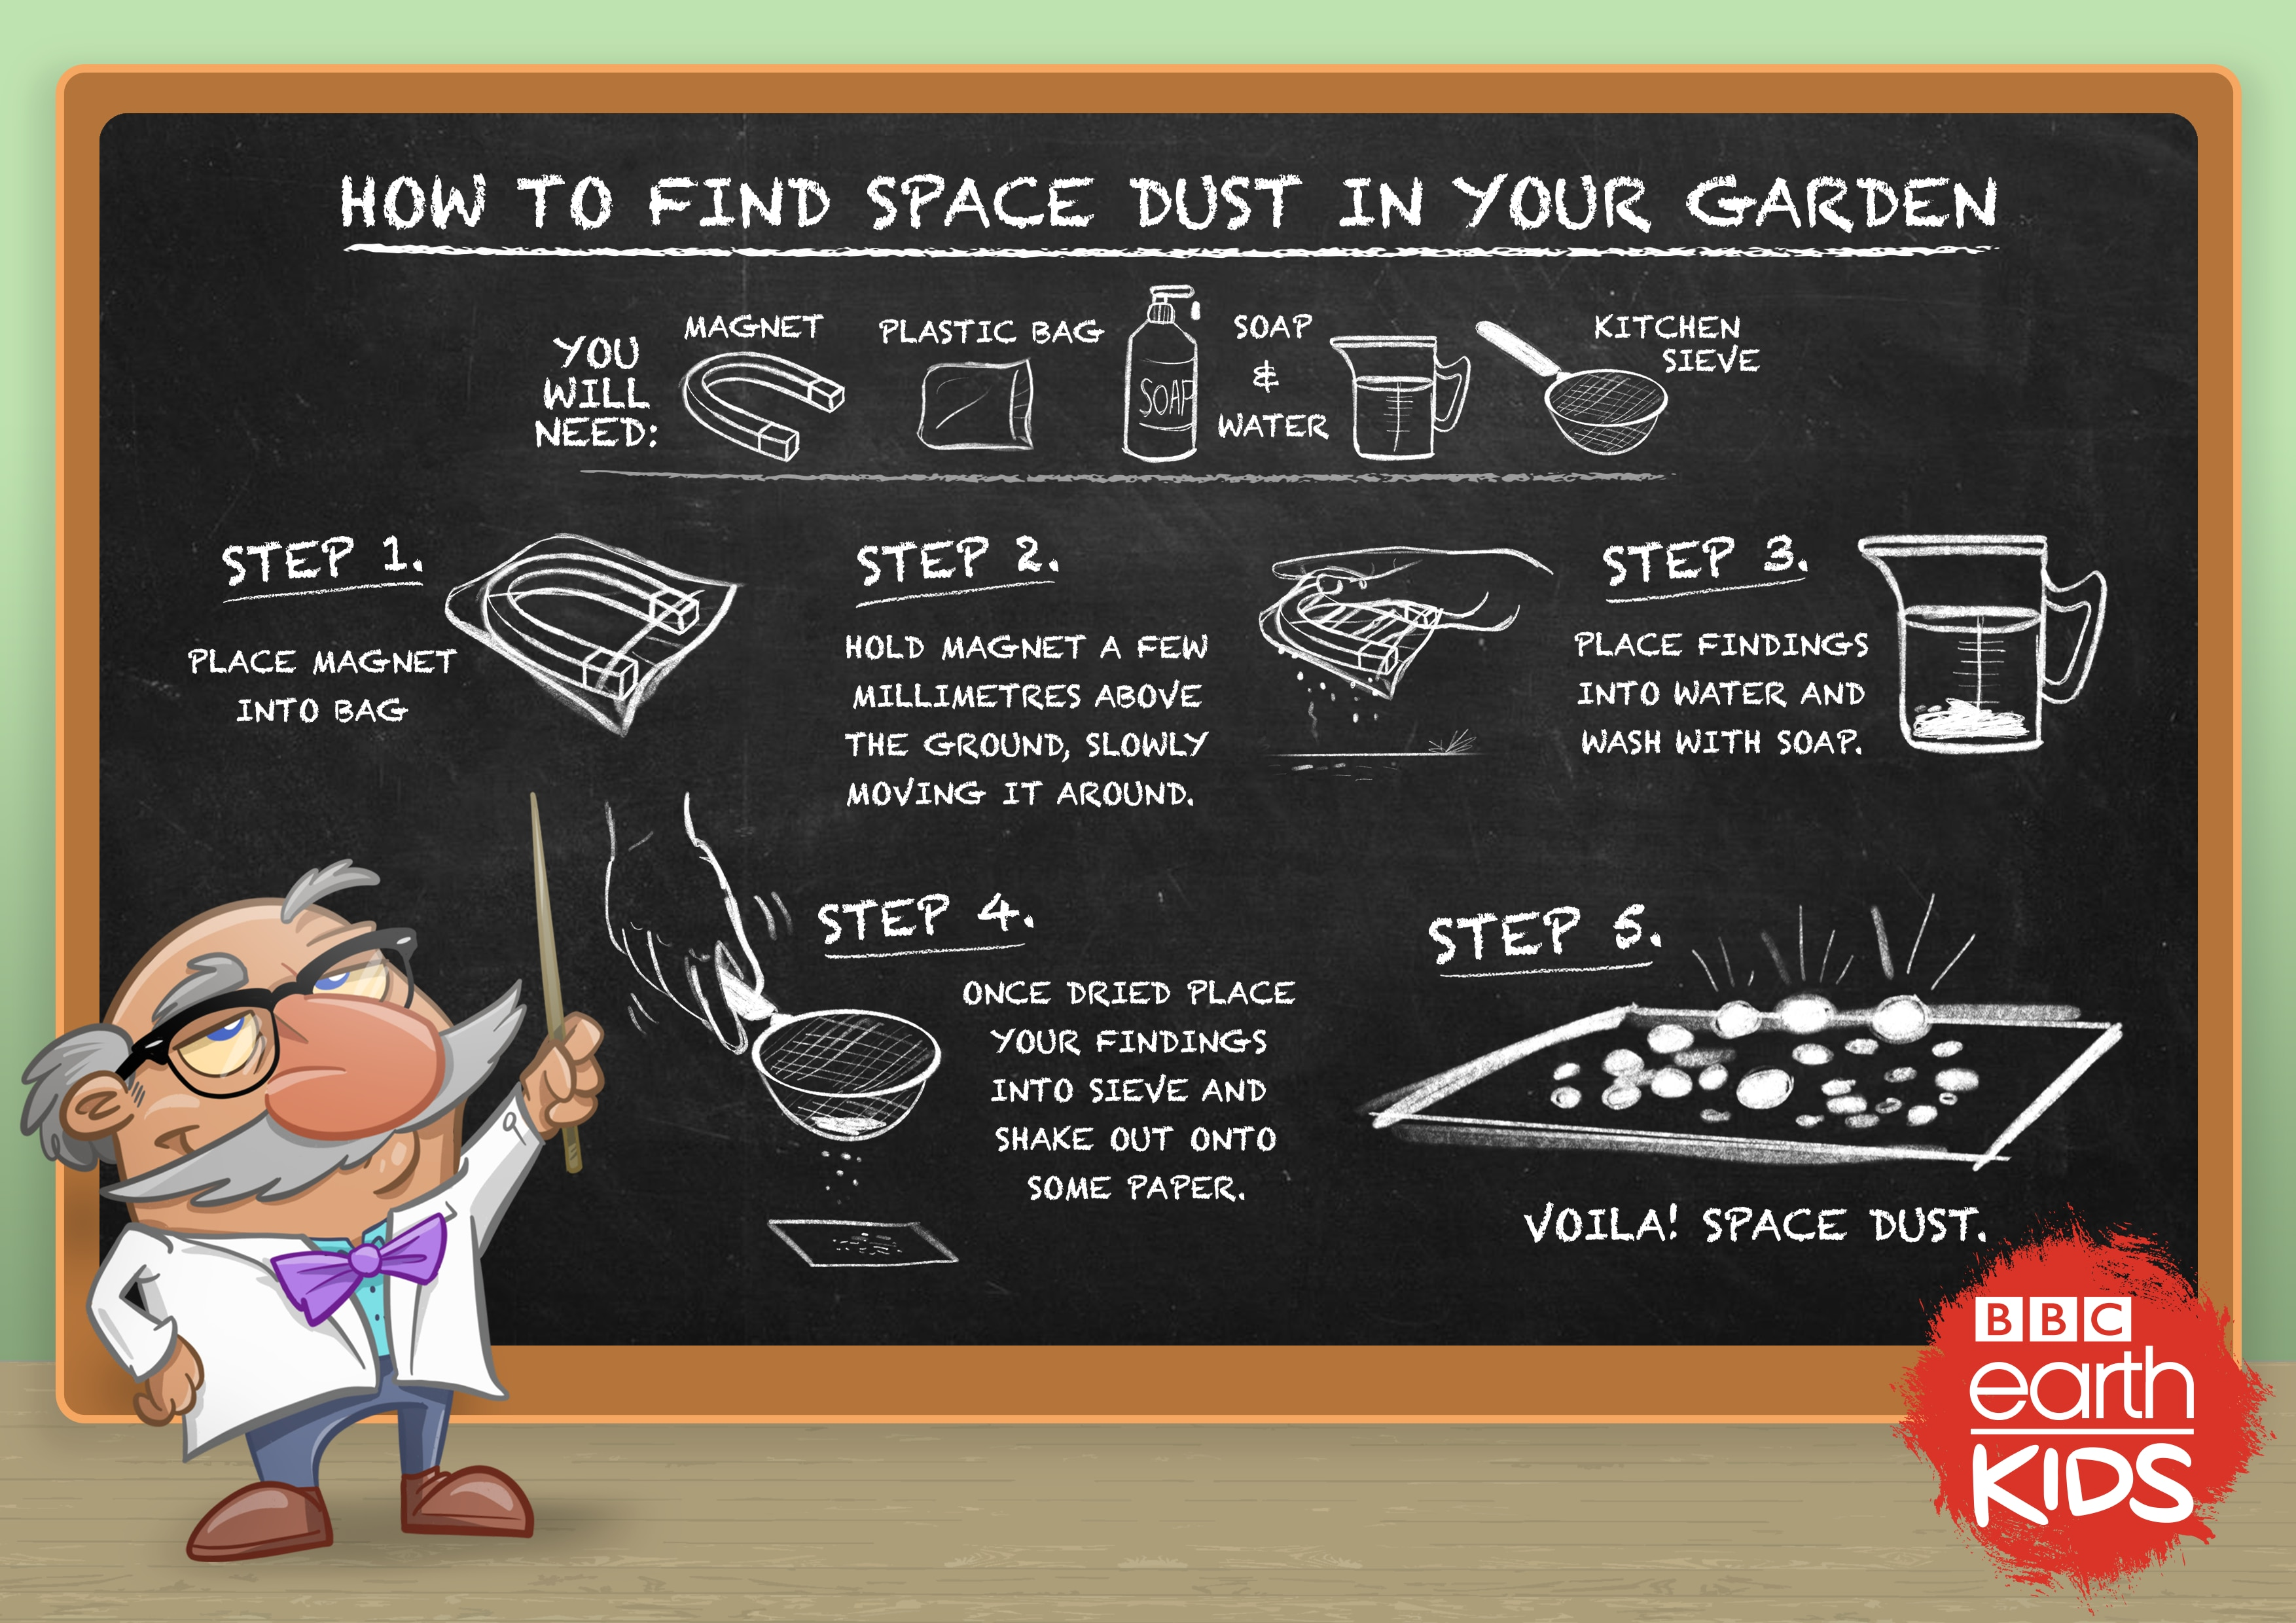 An illustrated guide to finding space dust in your garden.